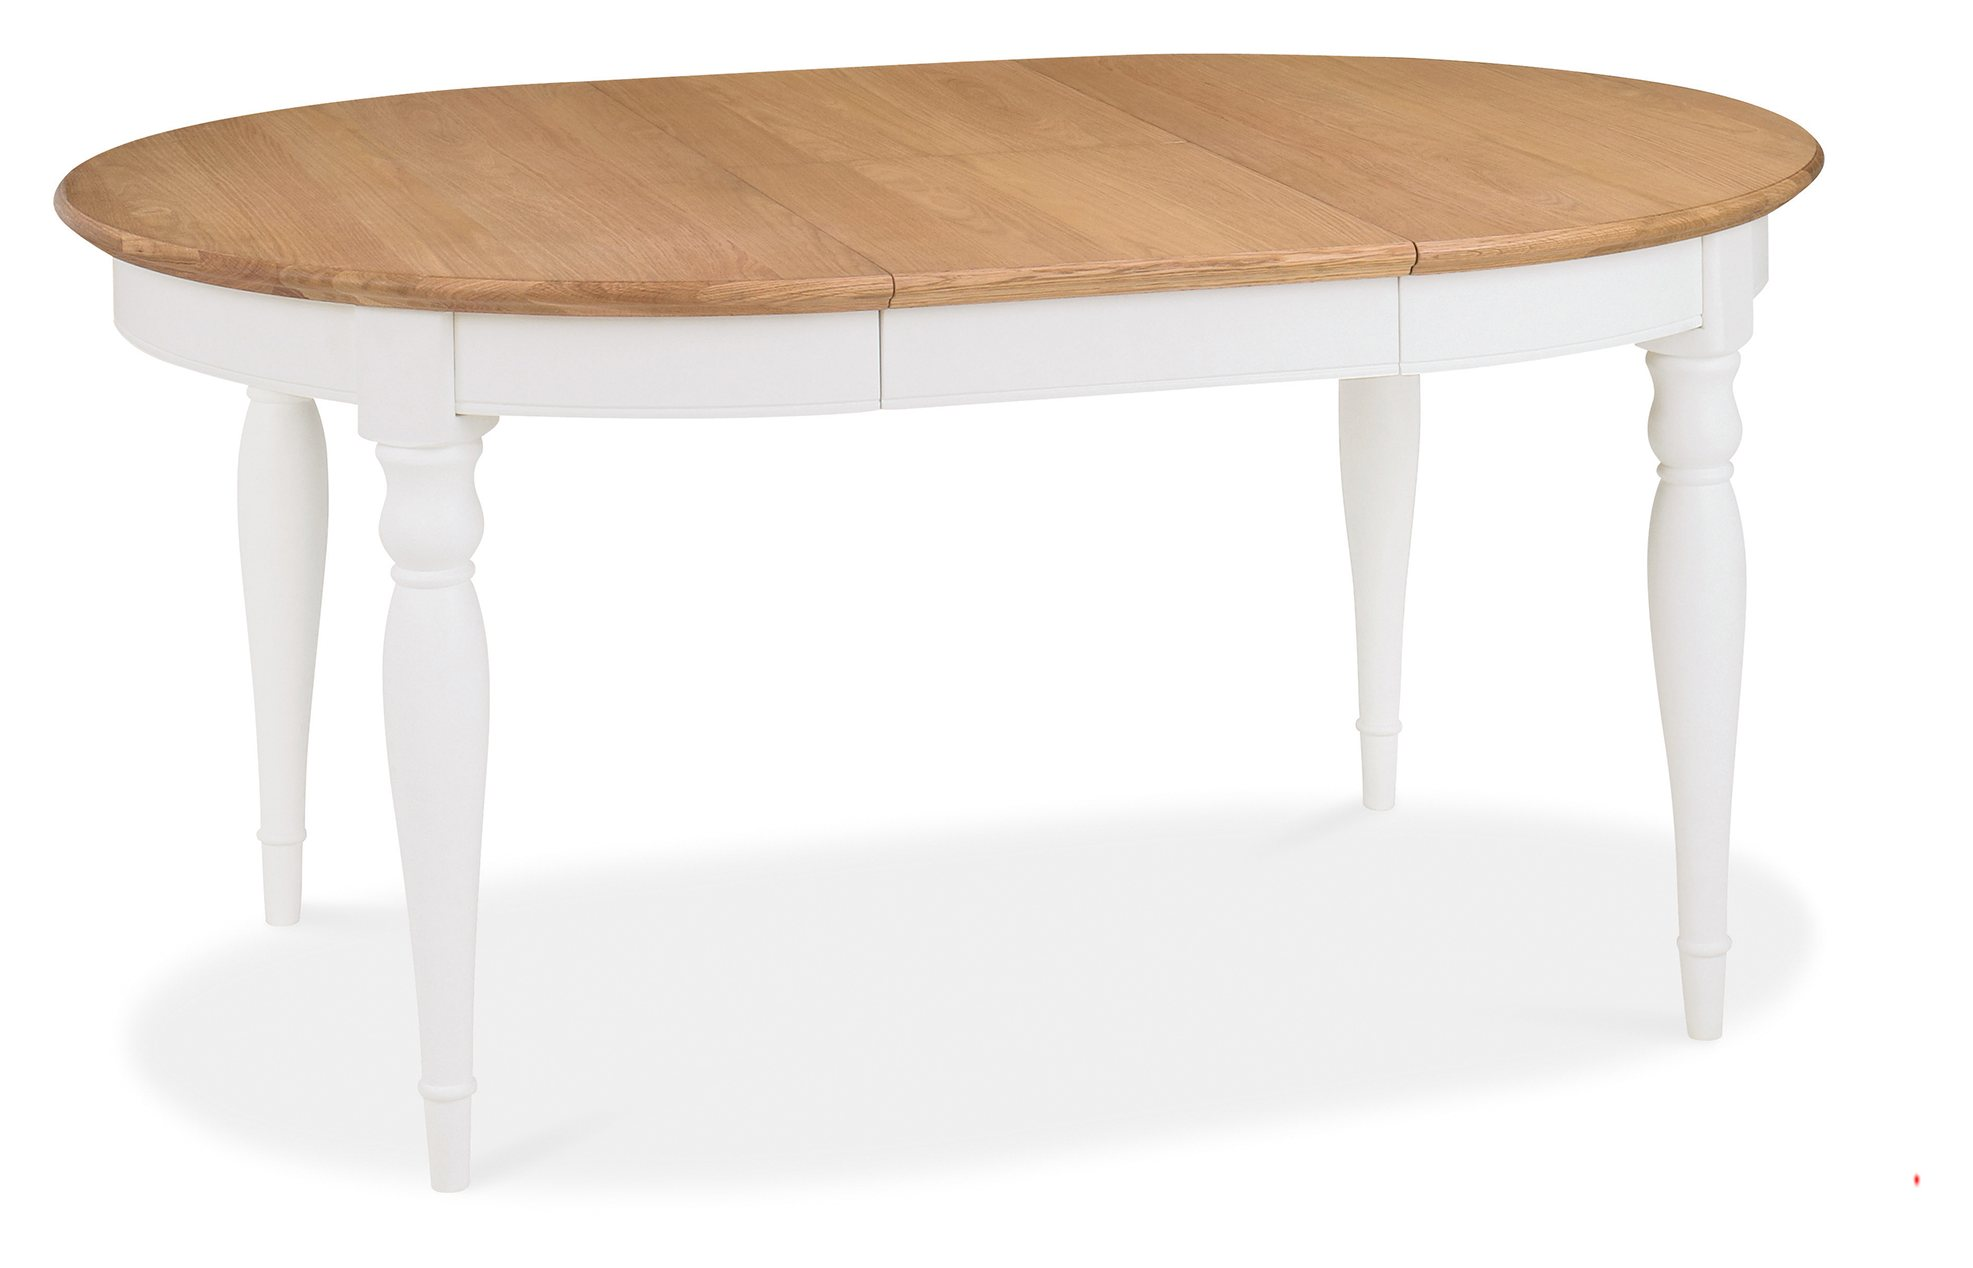 KYRA TWO TONE ROUND DINING TABLE OPENED - L181cm x D120cm x H77cm